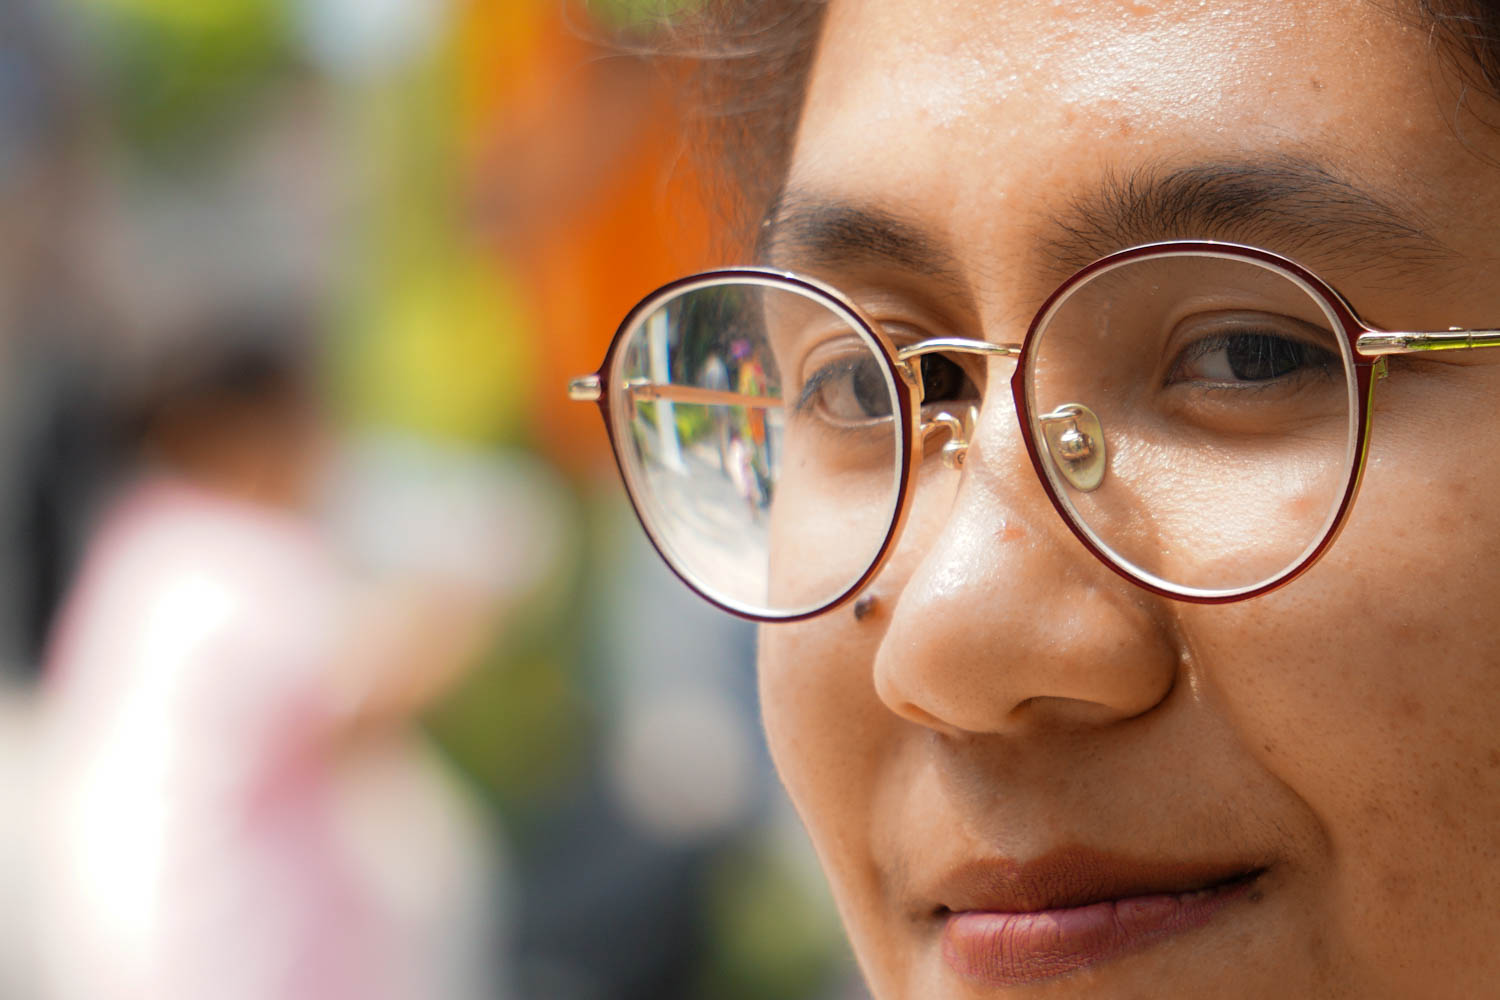 Close-up of woman with glasses